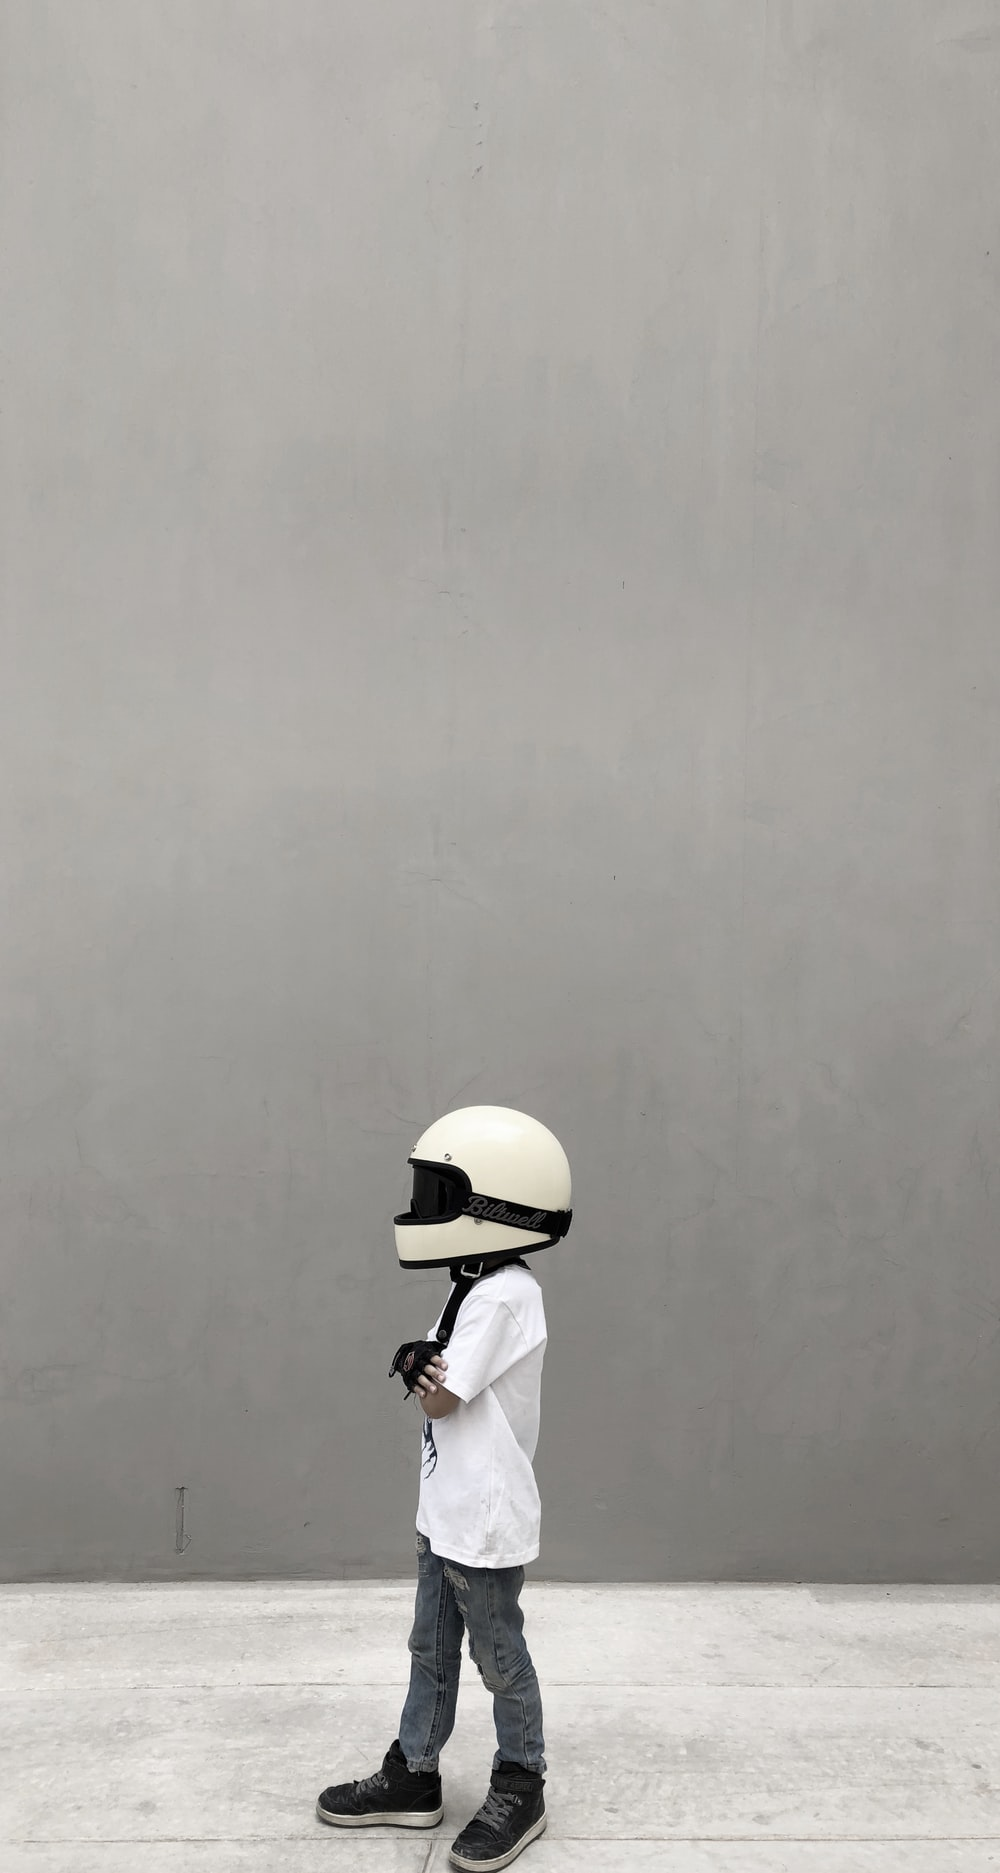 500+ Helmet Pictures [HD] | Download Free Images on Unsplash